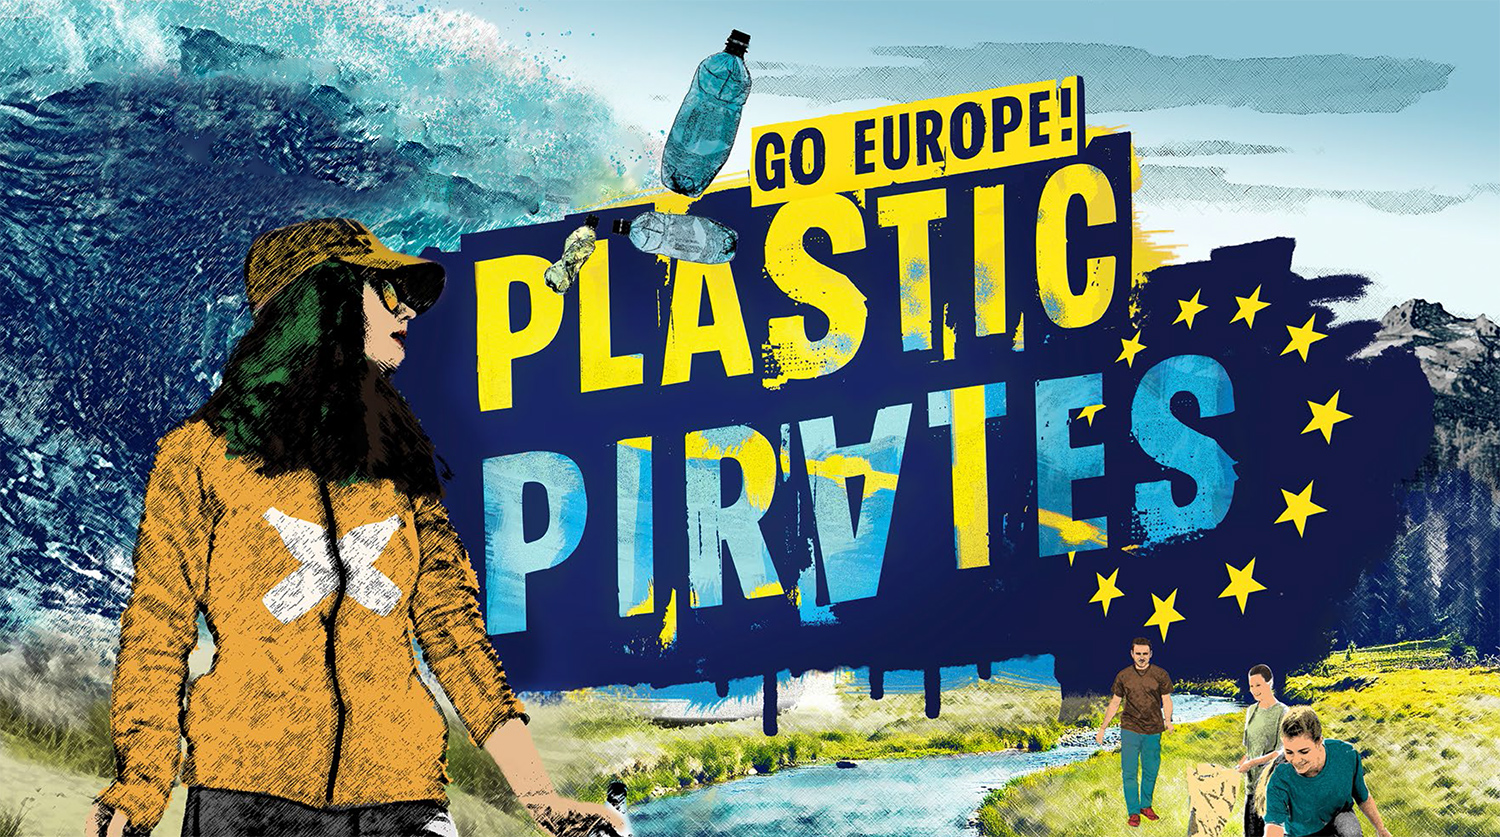 plastic pirates - go europe, plastic pirates, ciência viva